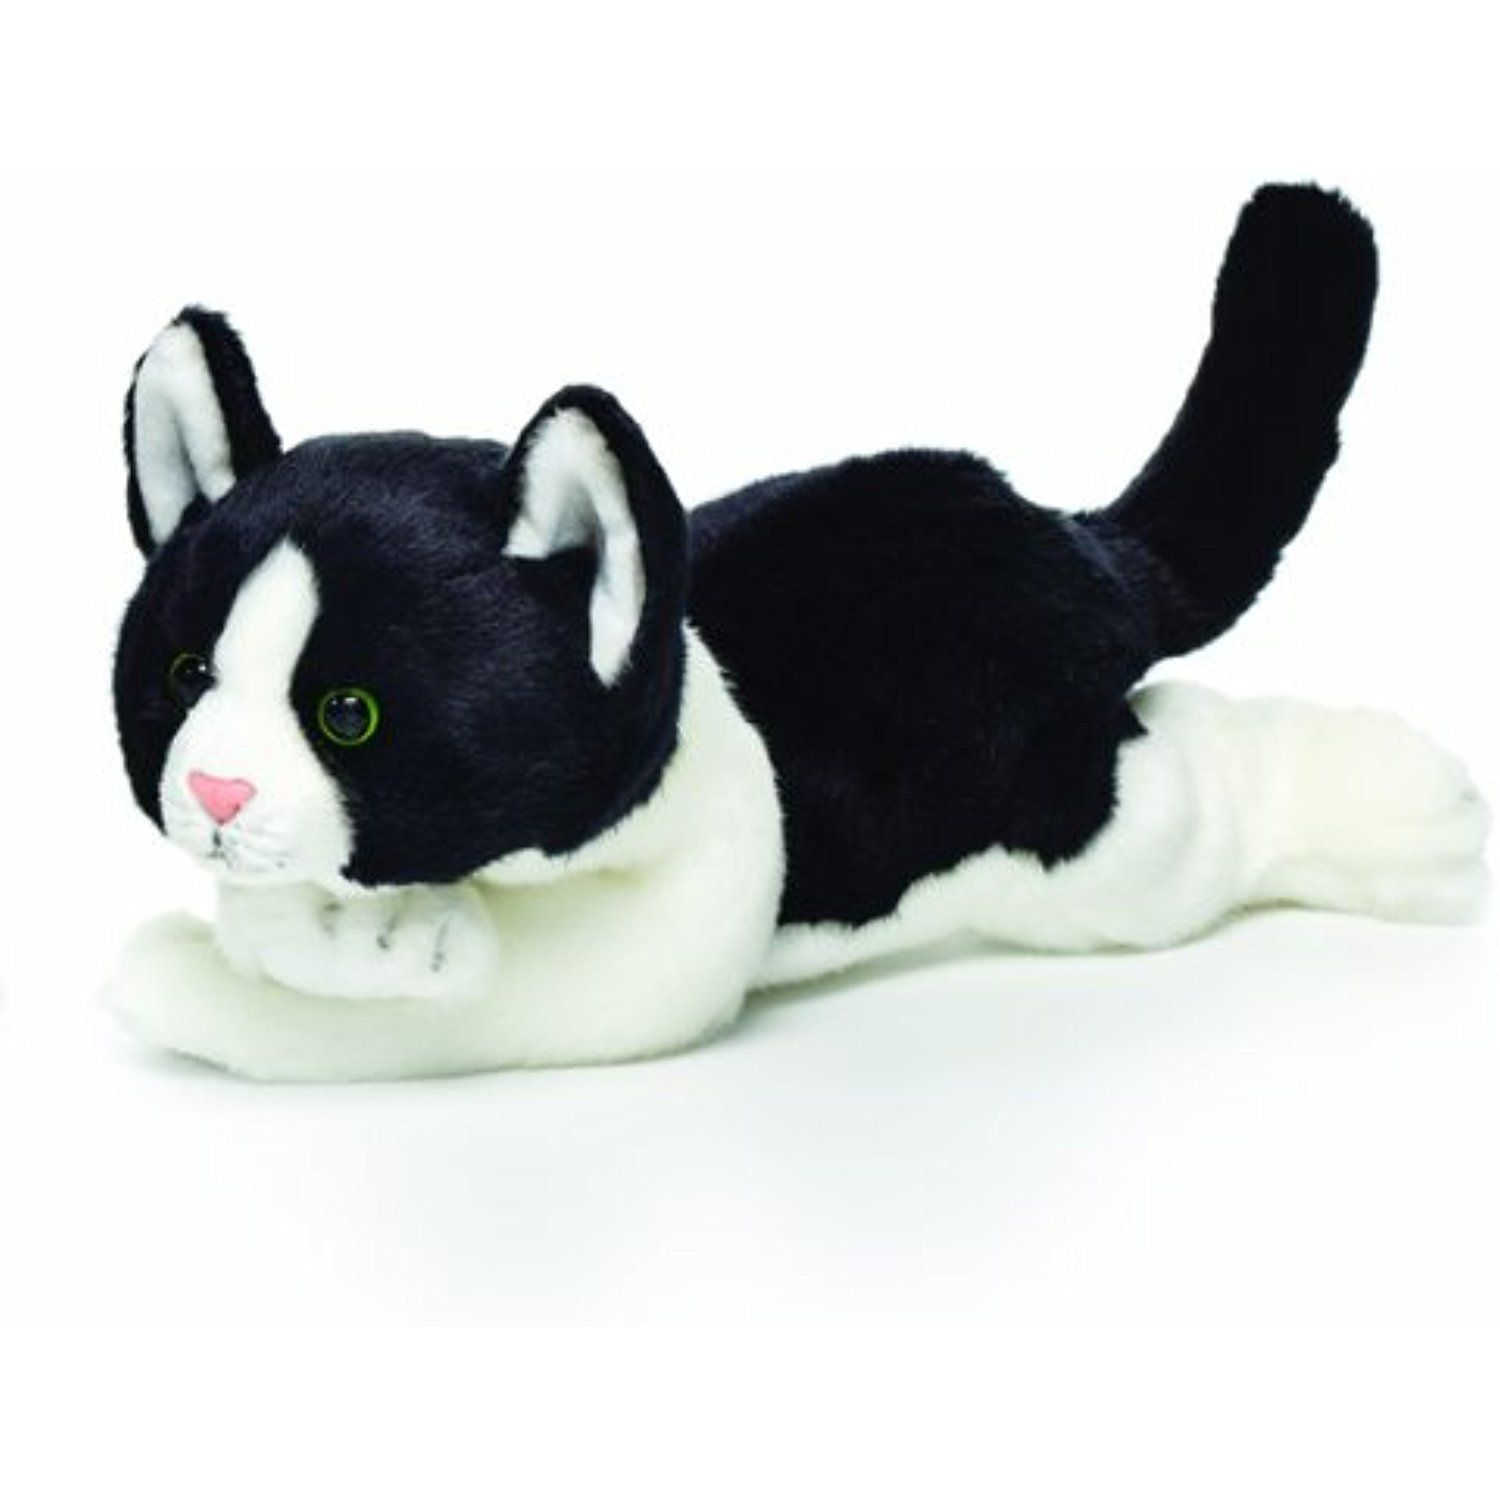 Nat And Jules Plush Toy Black And White Cat Large Want To Know More Click On The Image This Is Teddy Bear Stuffed Animal Cat Plush Animal Babies Toys